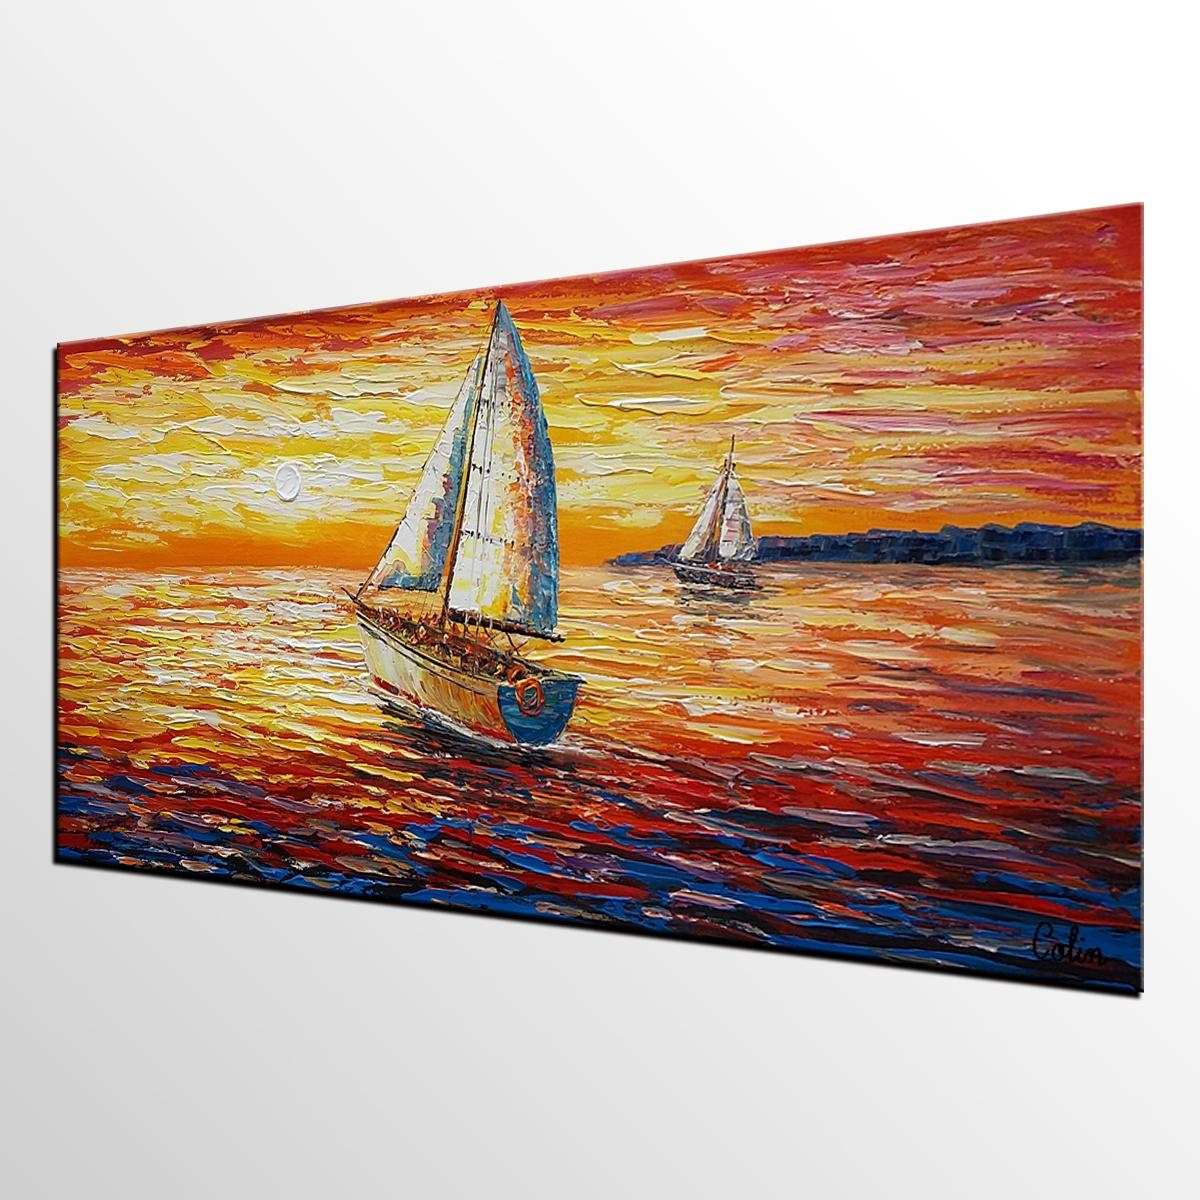 Original Wall Art, Sail Boat Painting, Seascape Painting, Abstract Intended For Boat Wall Art (Image 14 of 20)